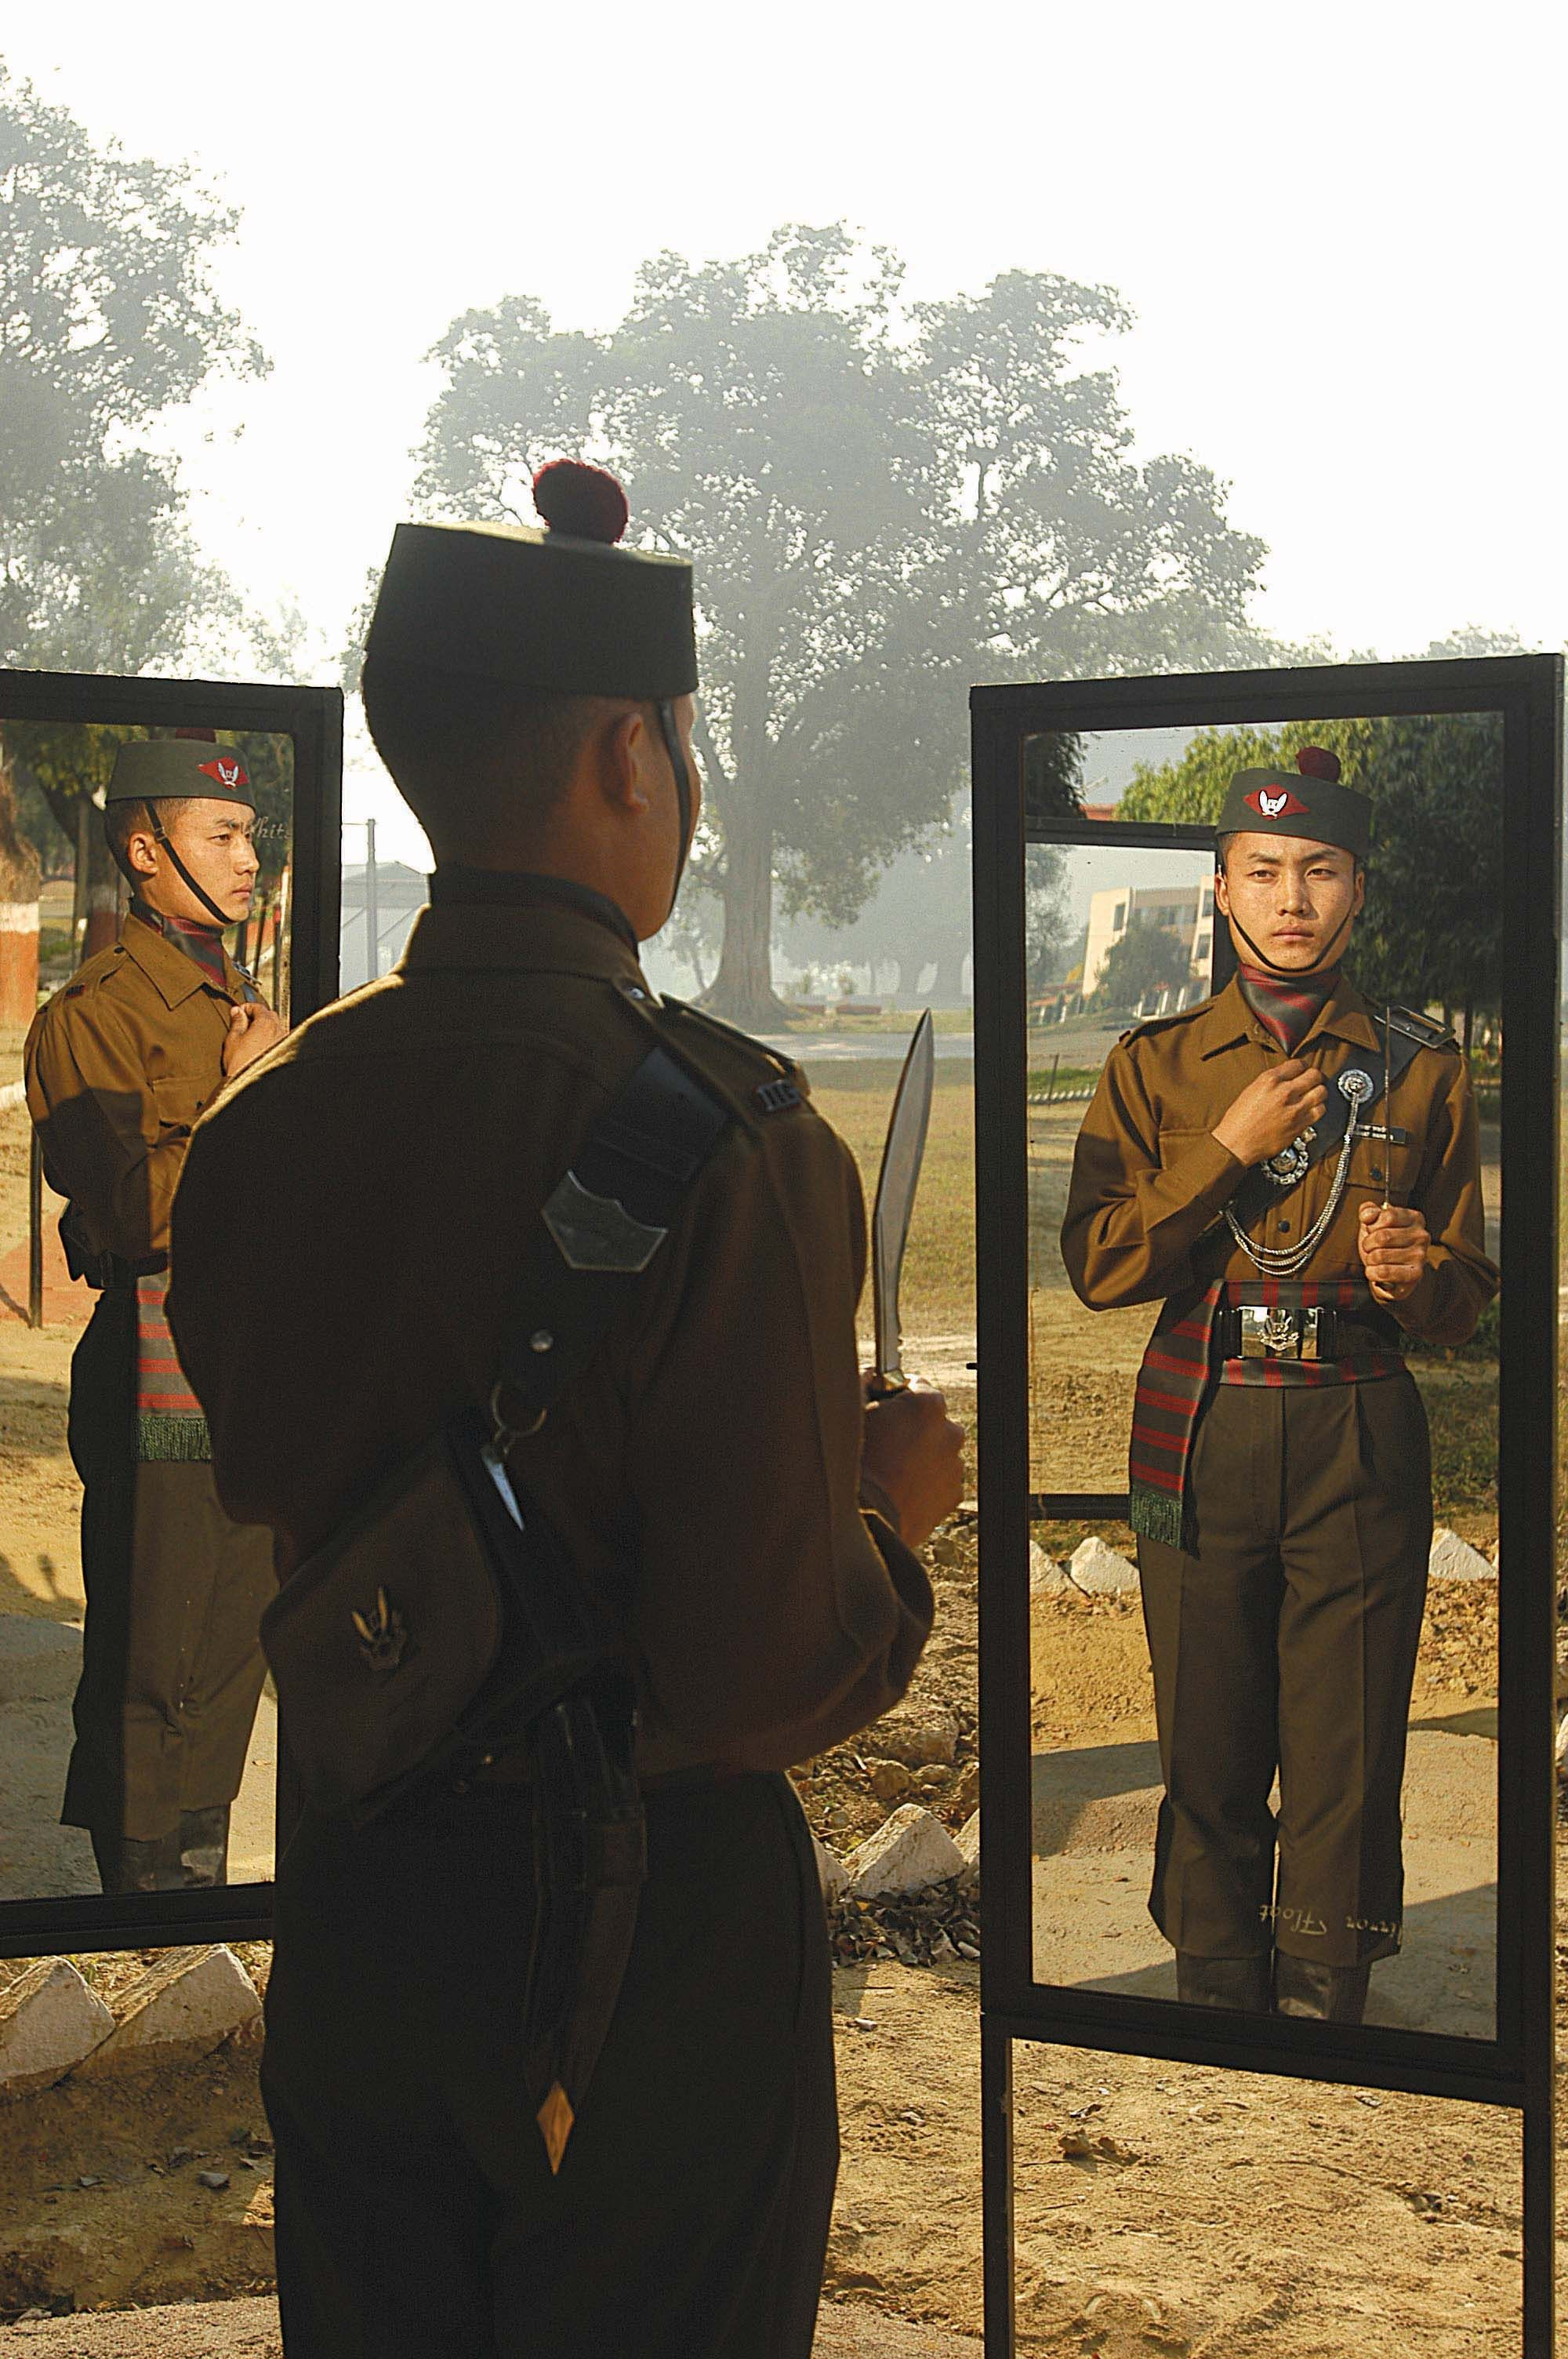 Soldierly Pride!